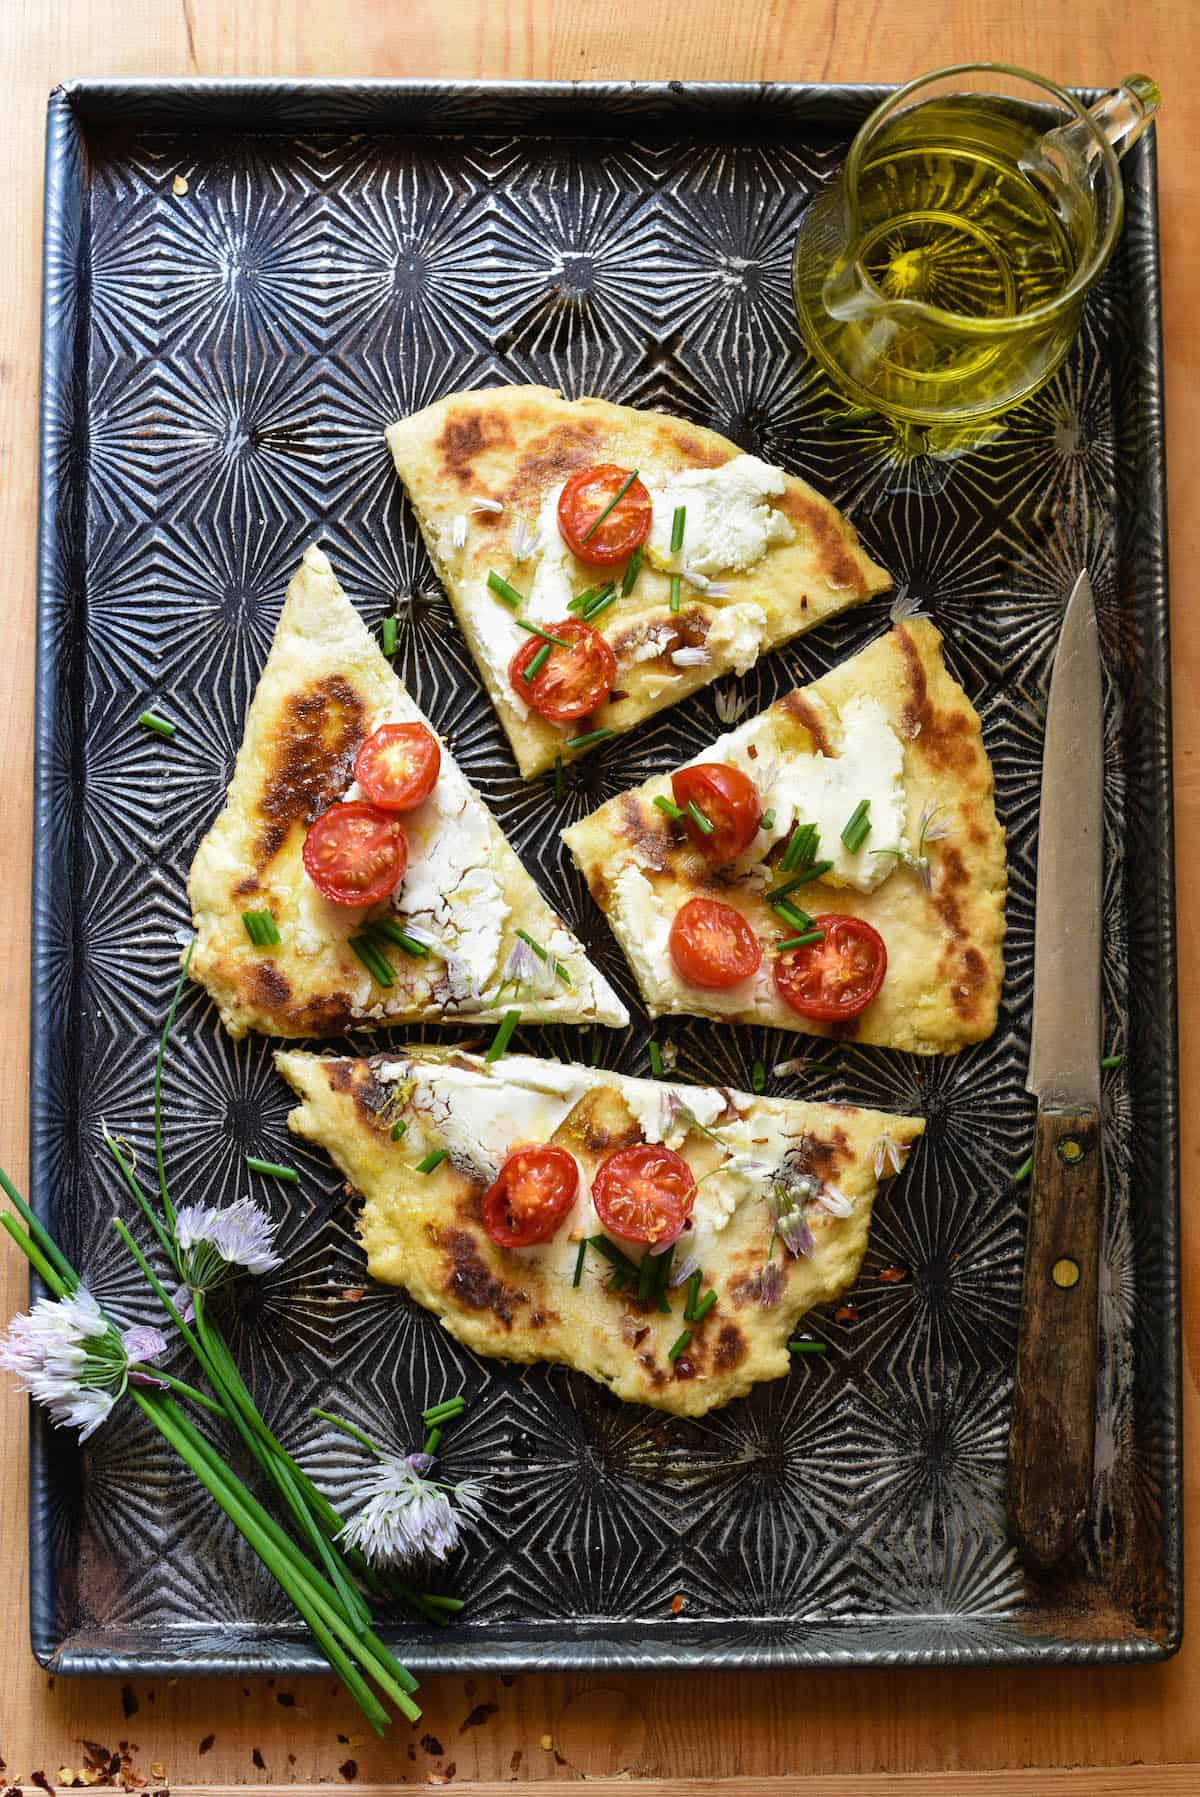 Overhead image of thin crust topped with tomatoes and goat cheese. Chives and chive flowers on pan with flatbread.